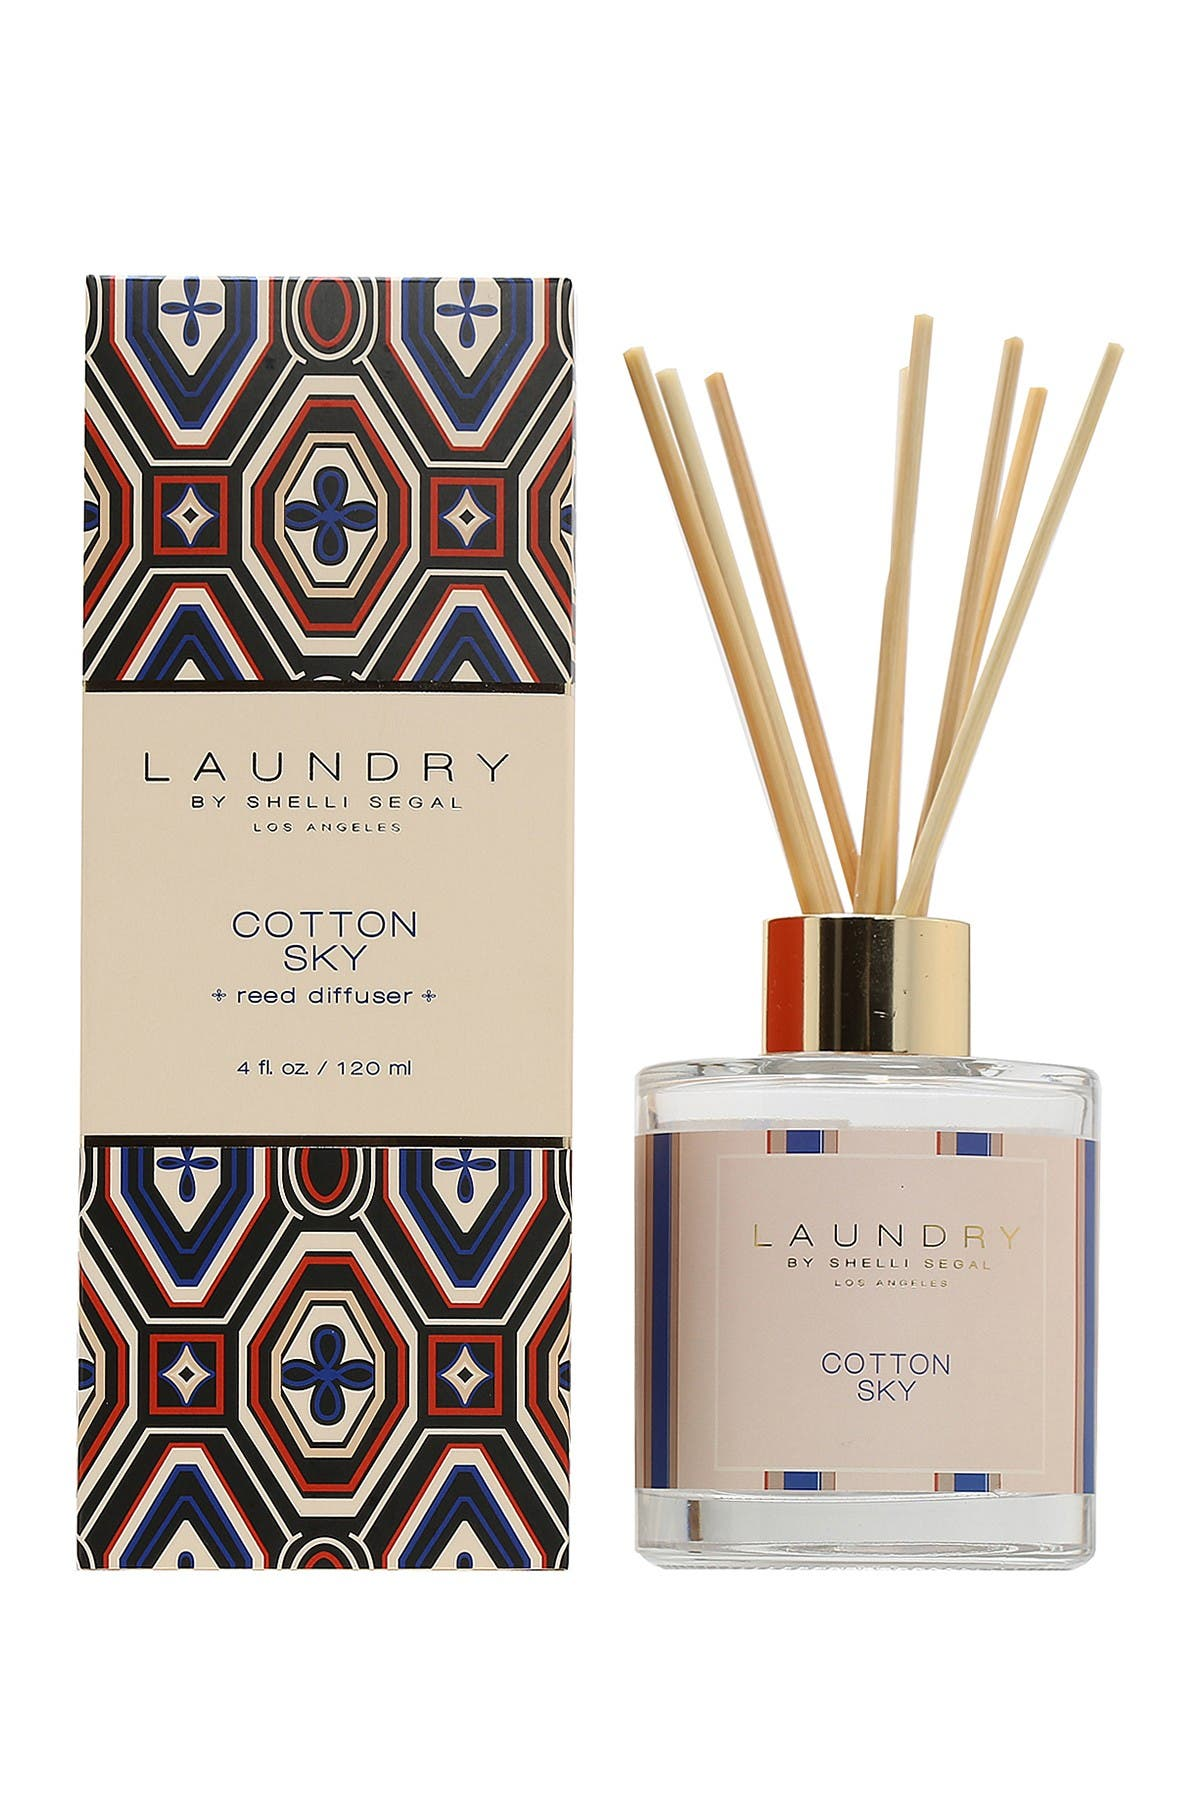 Image of Laundry Cotton Sky Reed Diffuser